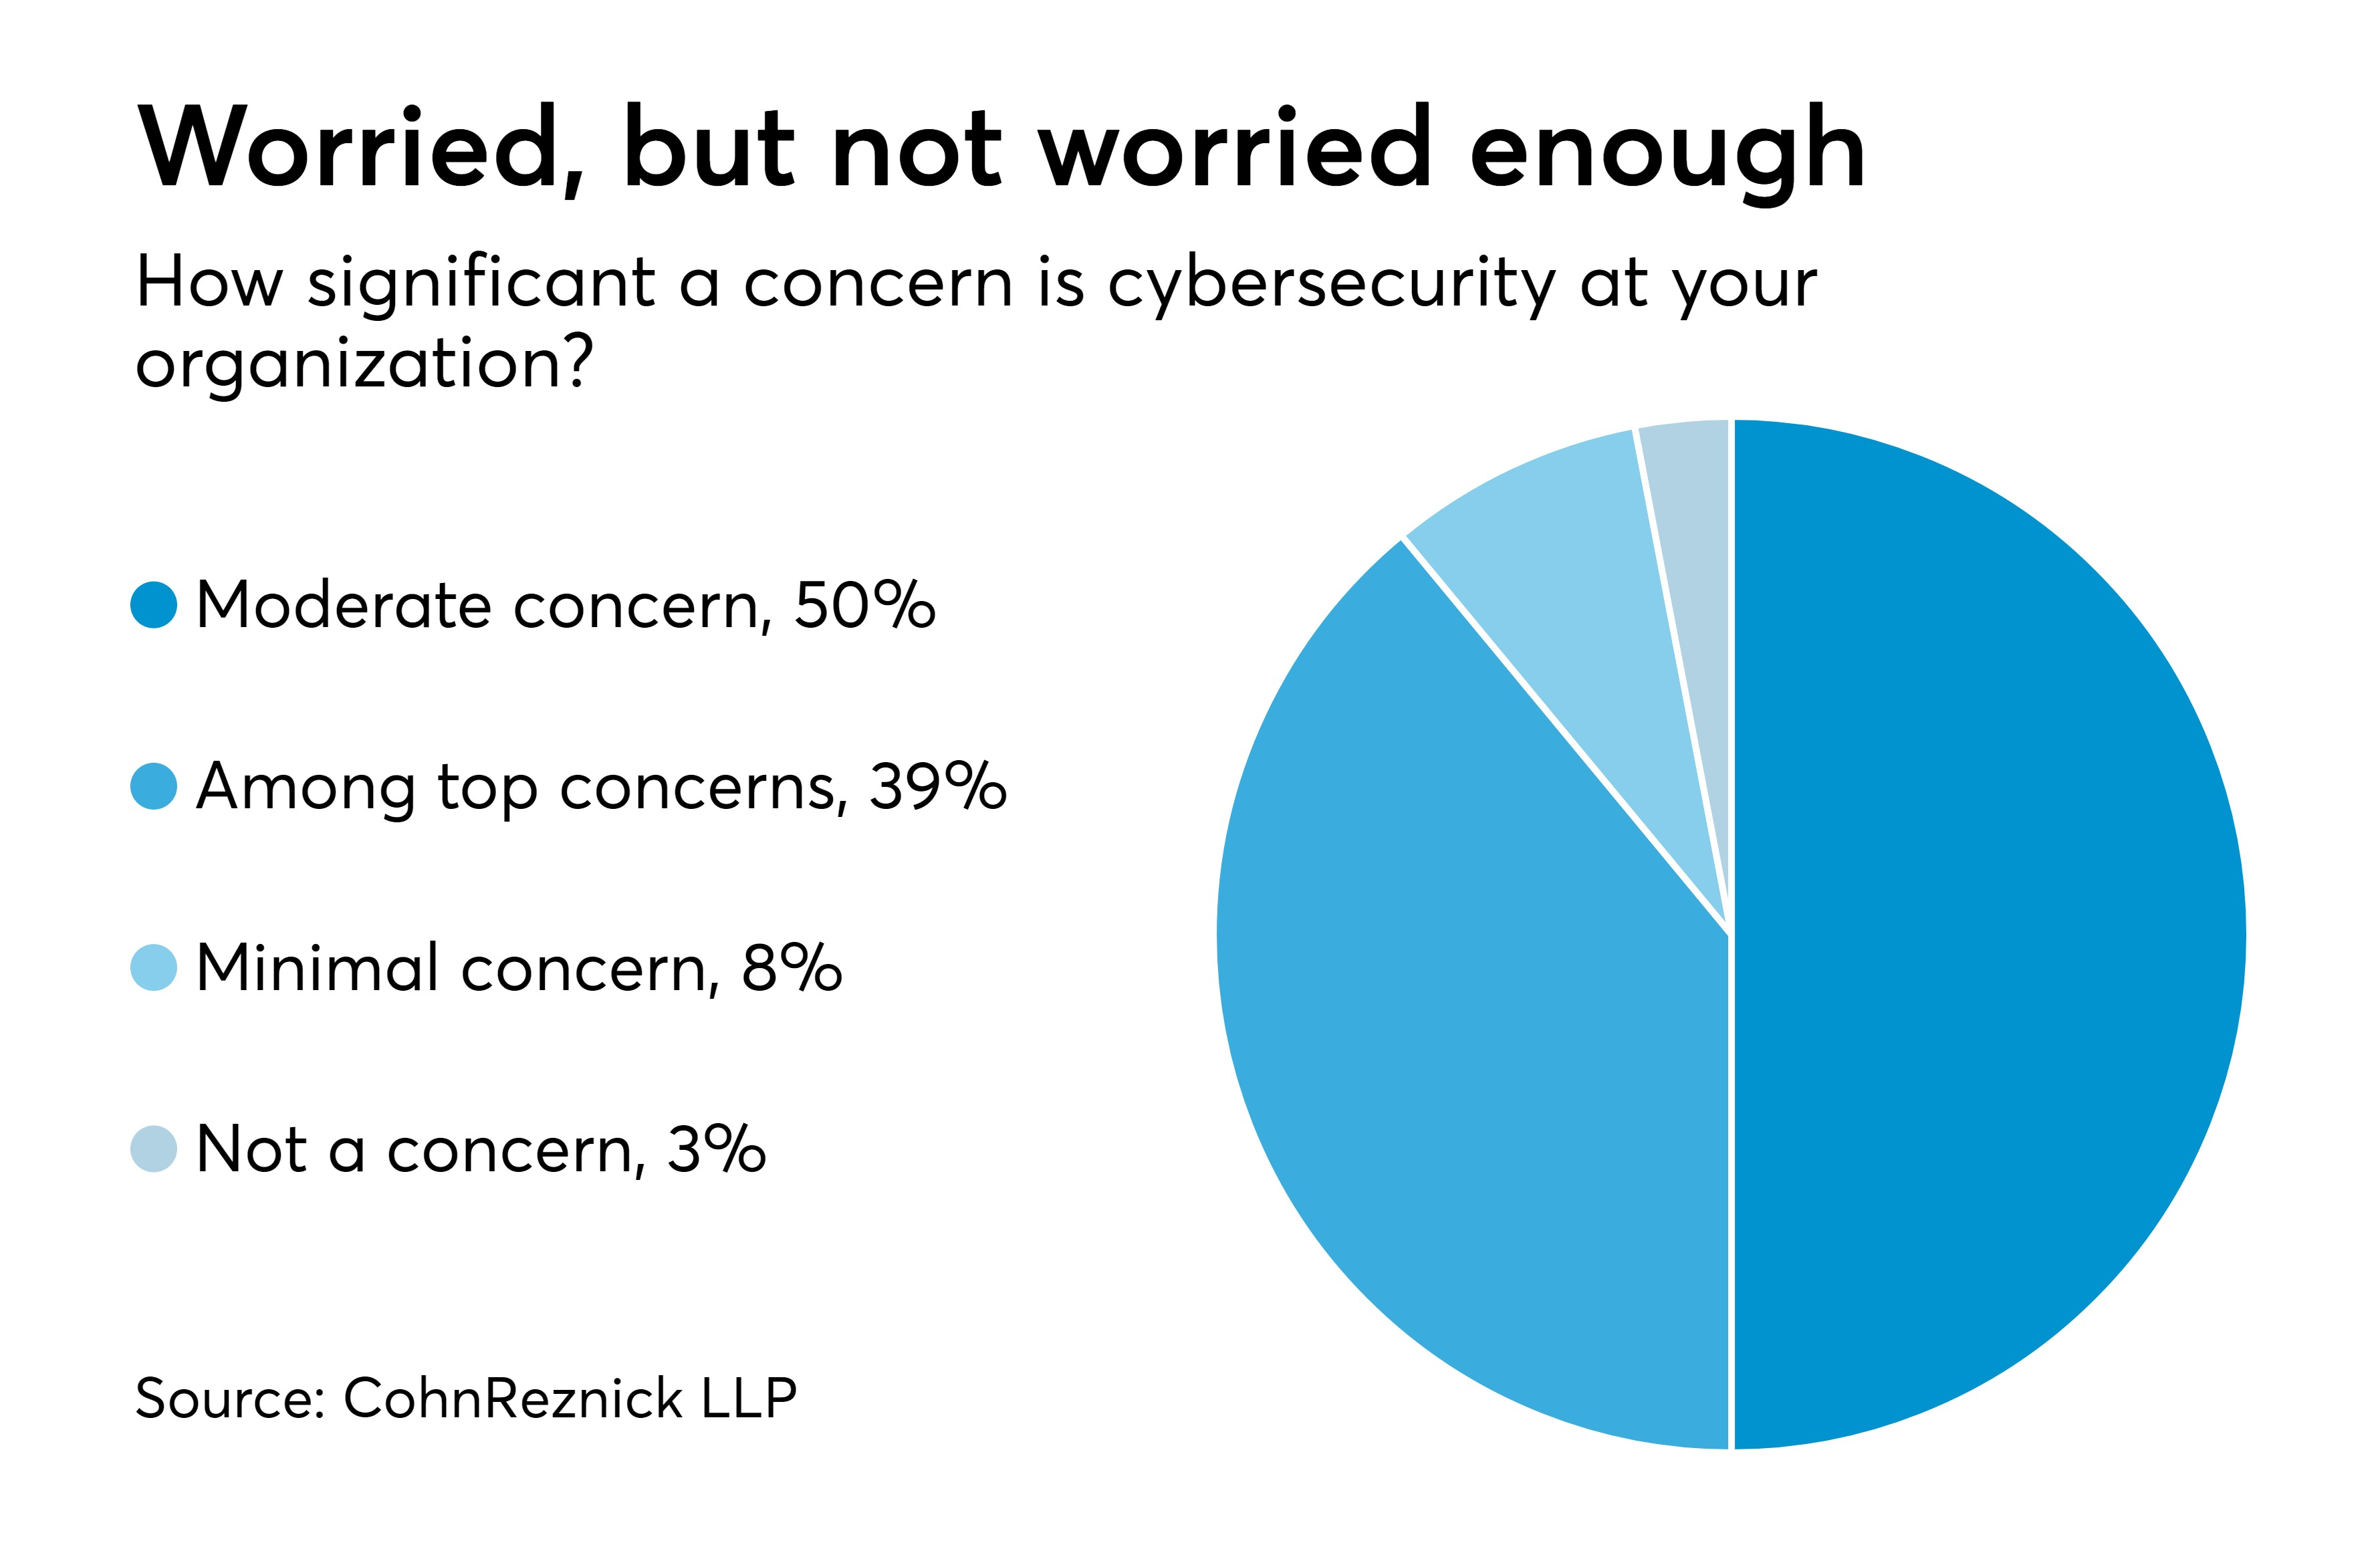 https://assets.sourcemedia.com/0b/e4/d800e3634c3982438dfe90a2b229/at120717-cybersecurity-concerns-chart.jpeg